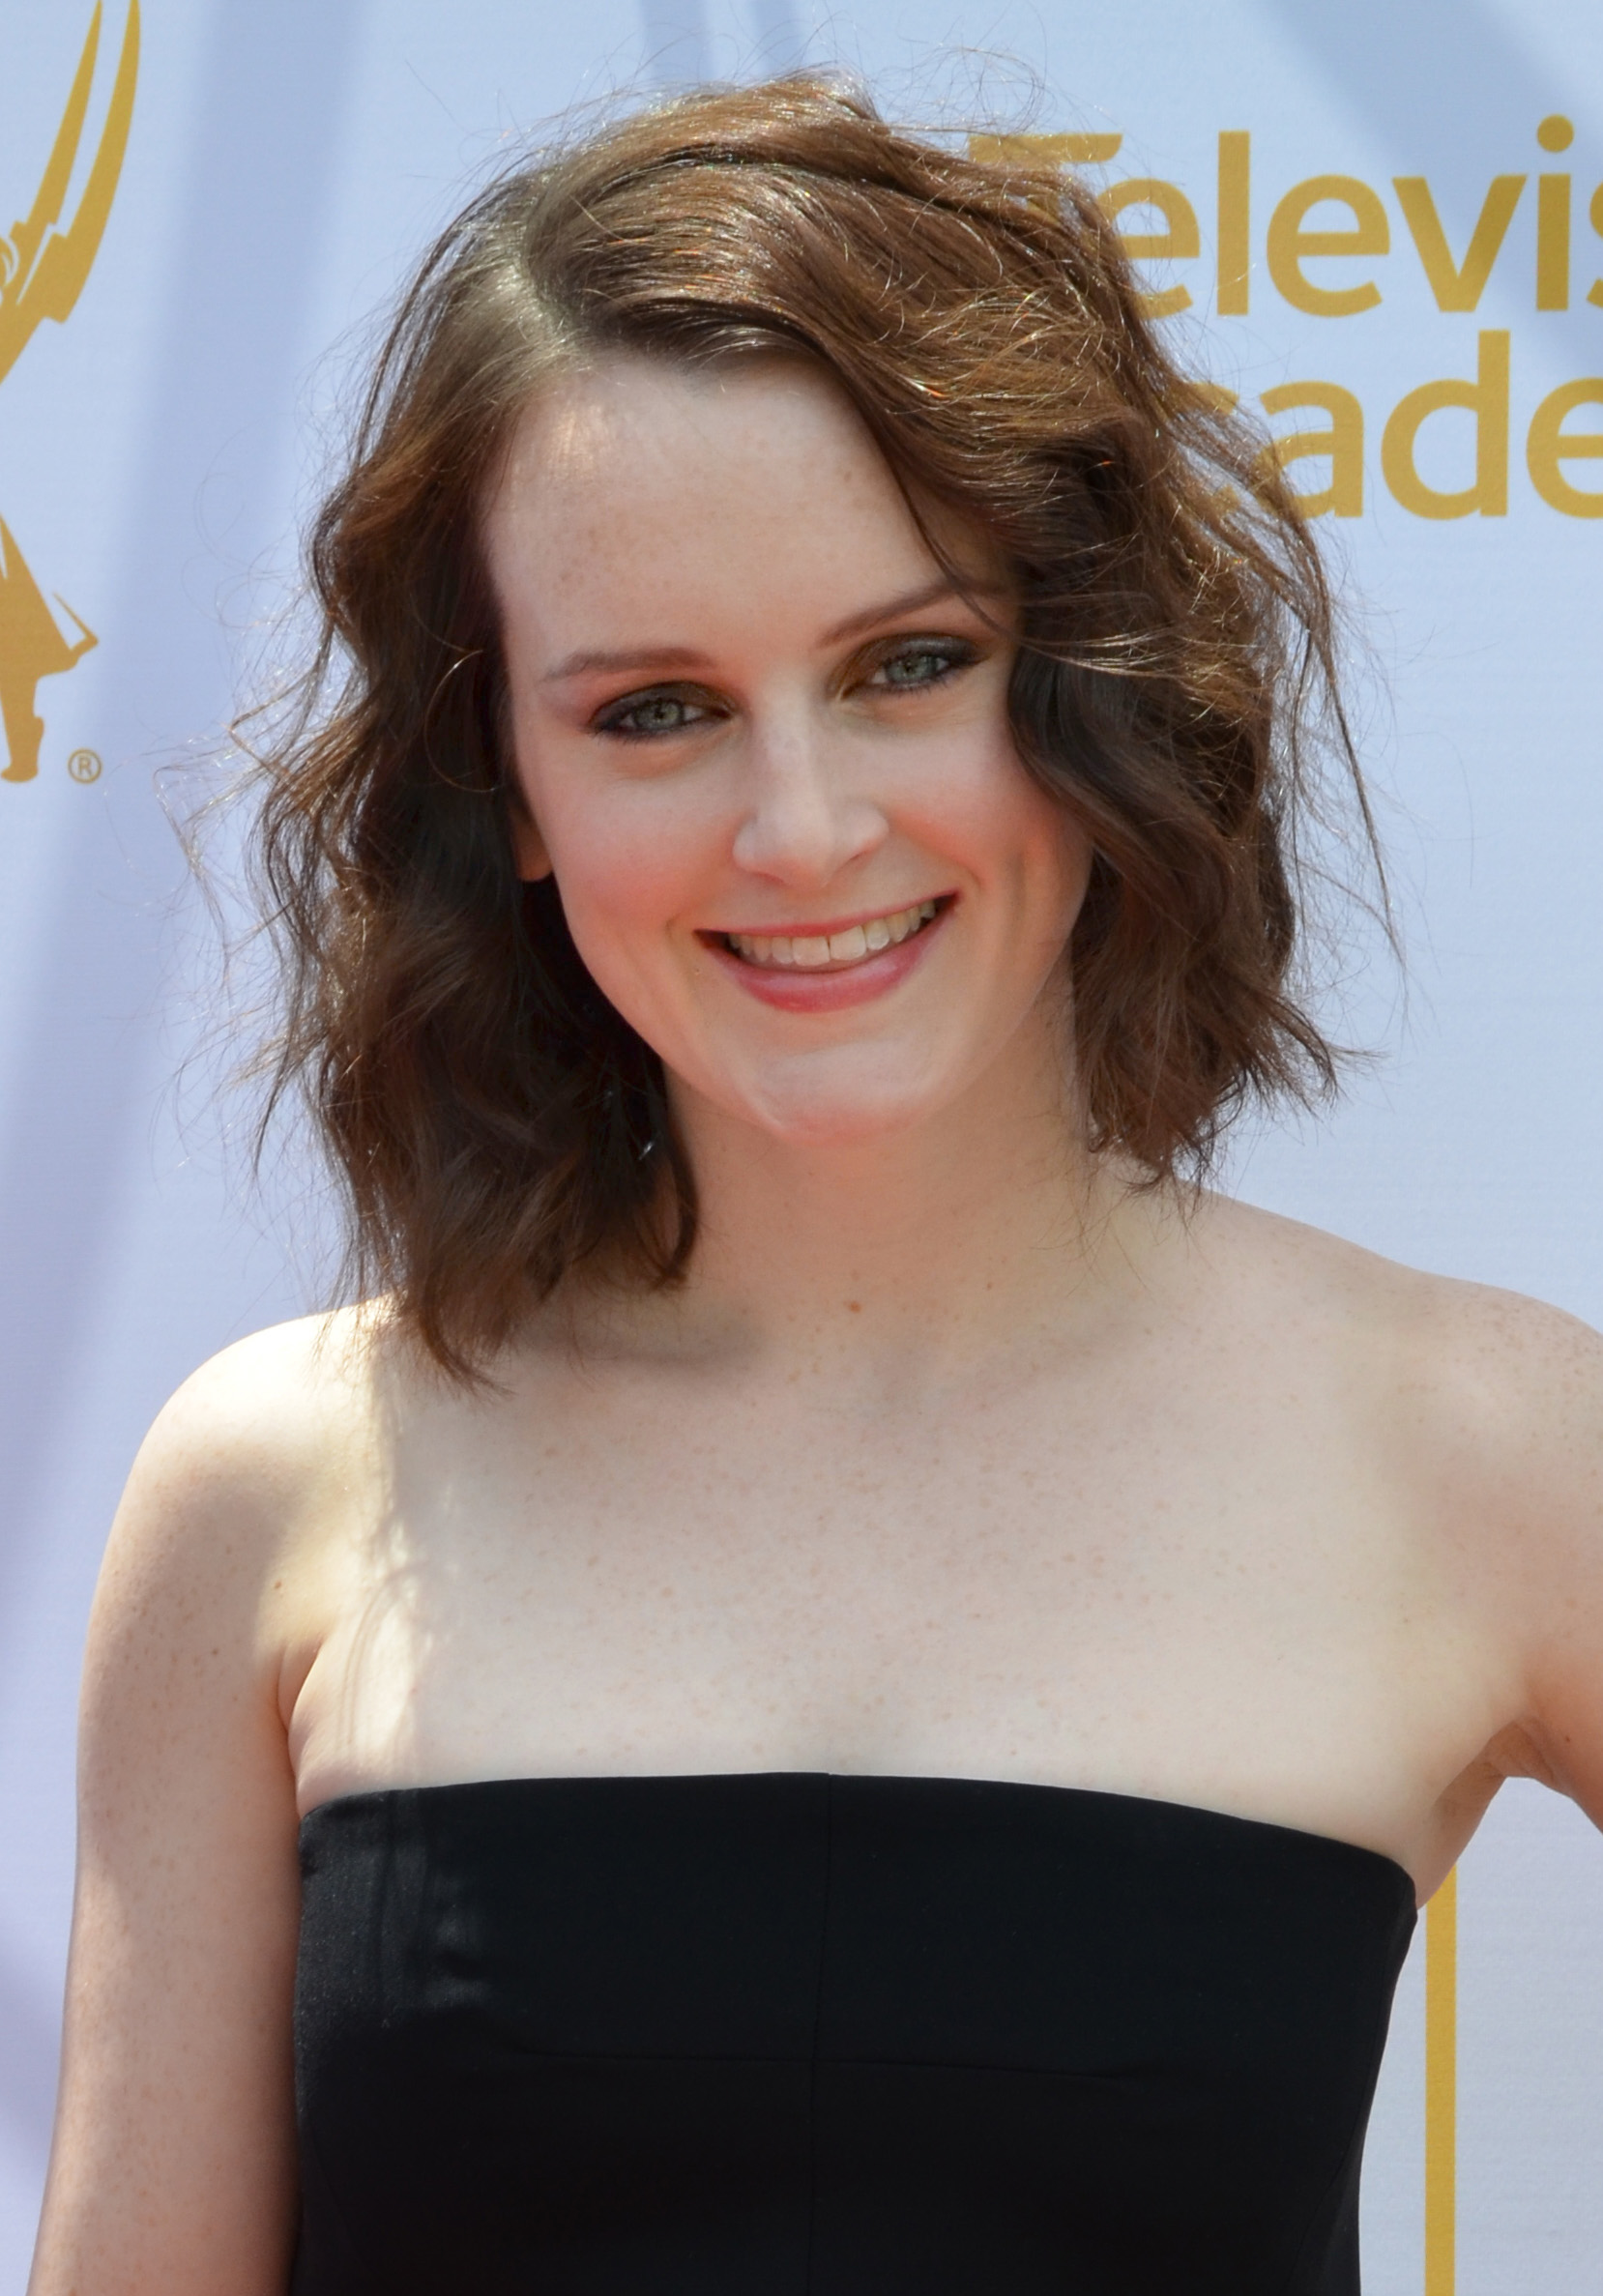 Sophie McShera earned a  million dollar salary - leaving the net worth at 1 million in 2018